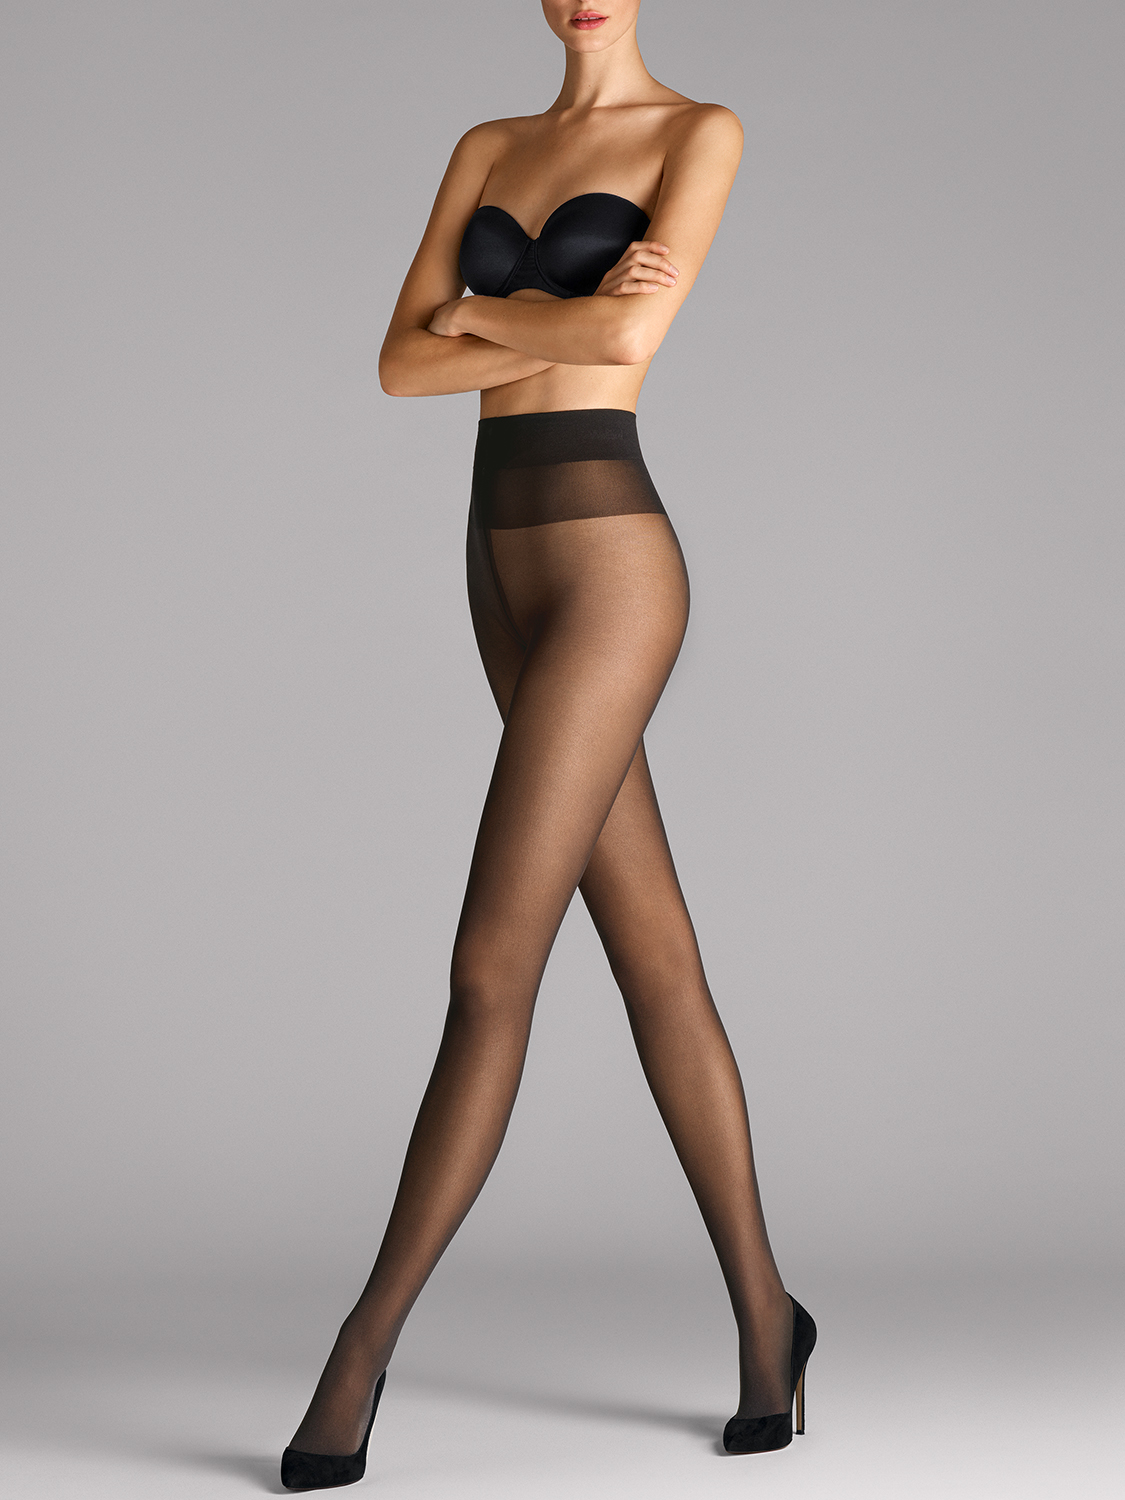 wolford latino personals Meet wolford singles online & chat in the forums dhu is a 100% free dating site to find personals & casual encounters in wolford.